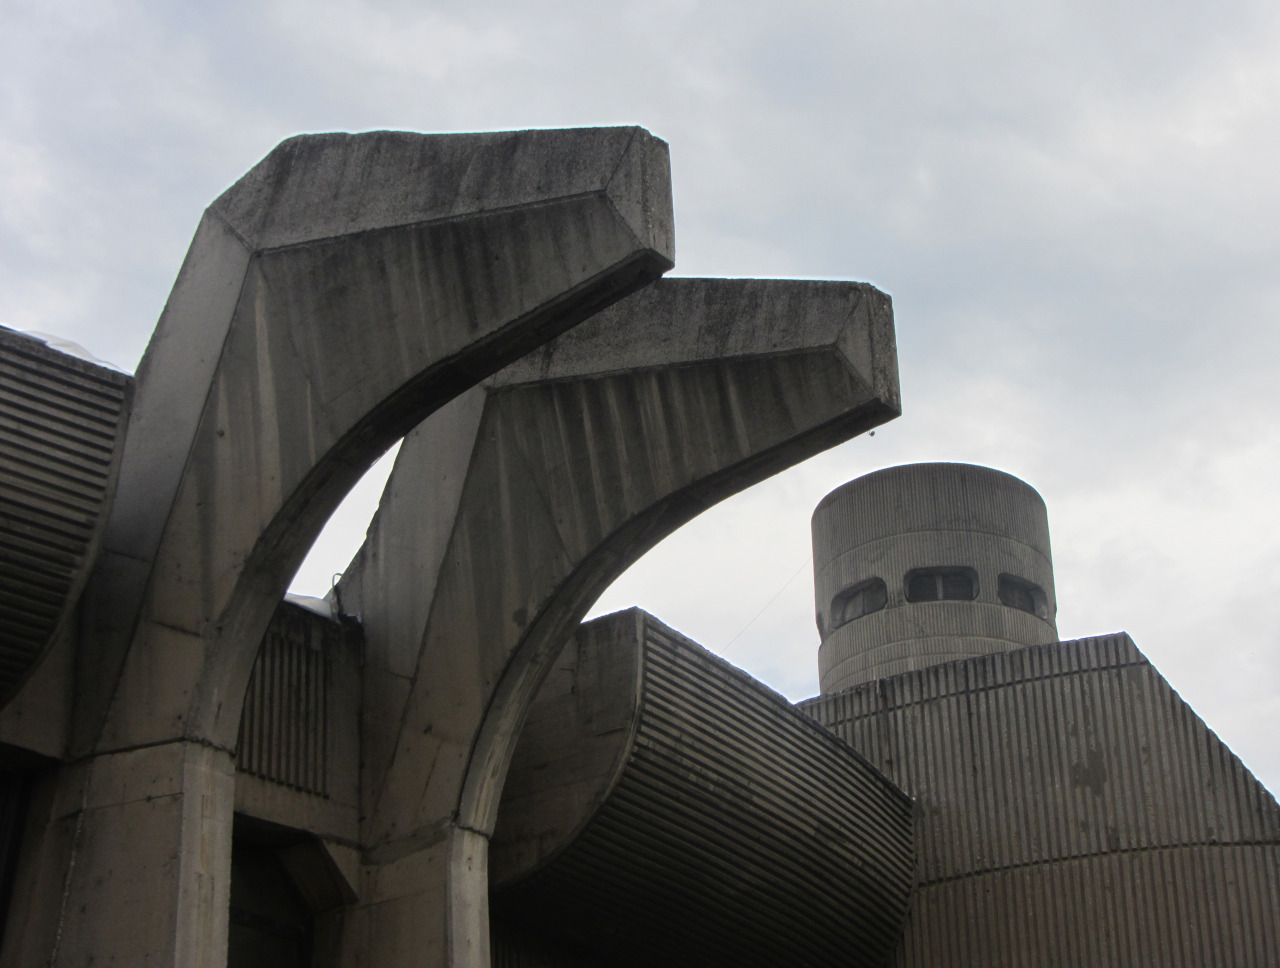 Telecommunications Centre and Post Office, Skopje, Janko Konstantinov, 1974-89. Now THAT'S Brutalism!